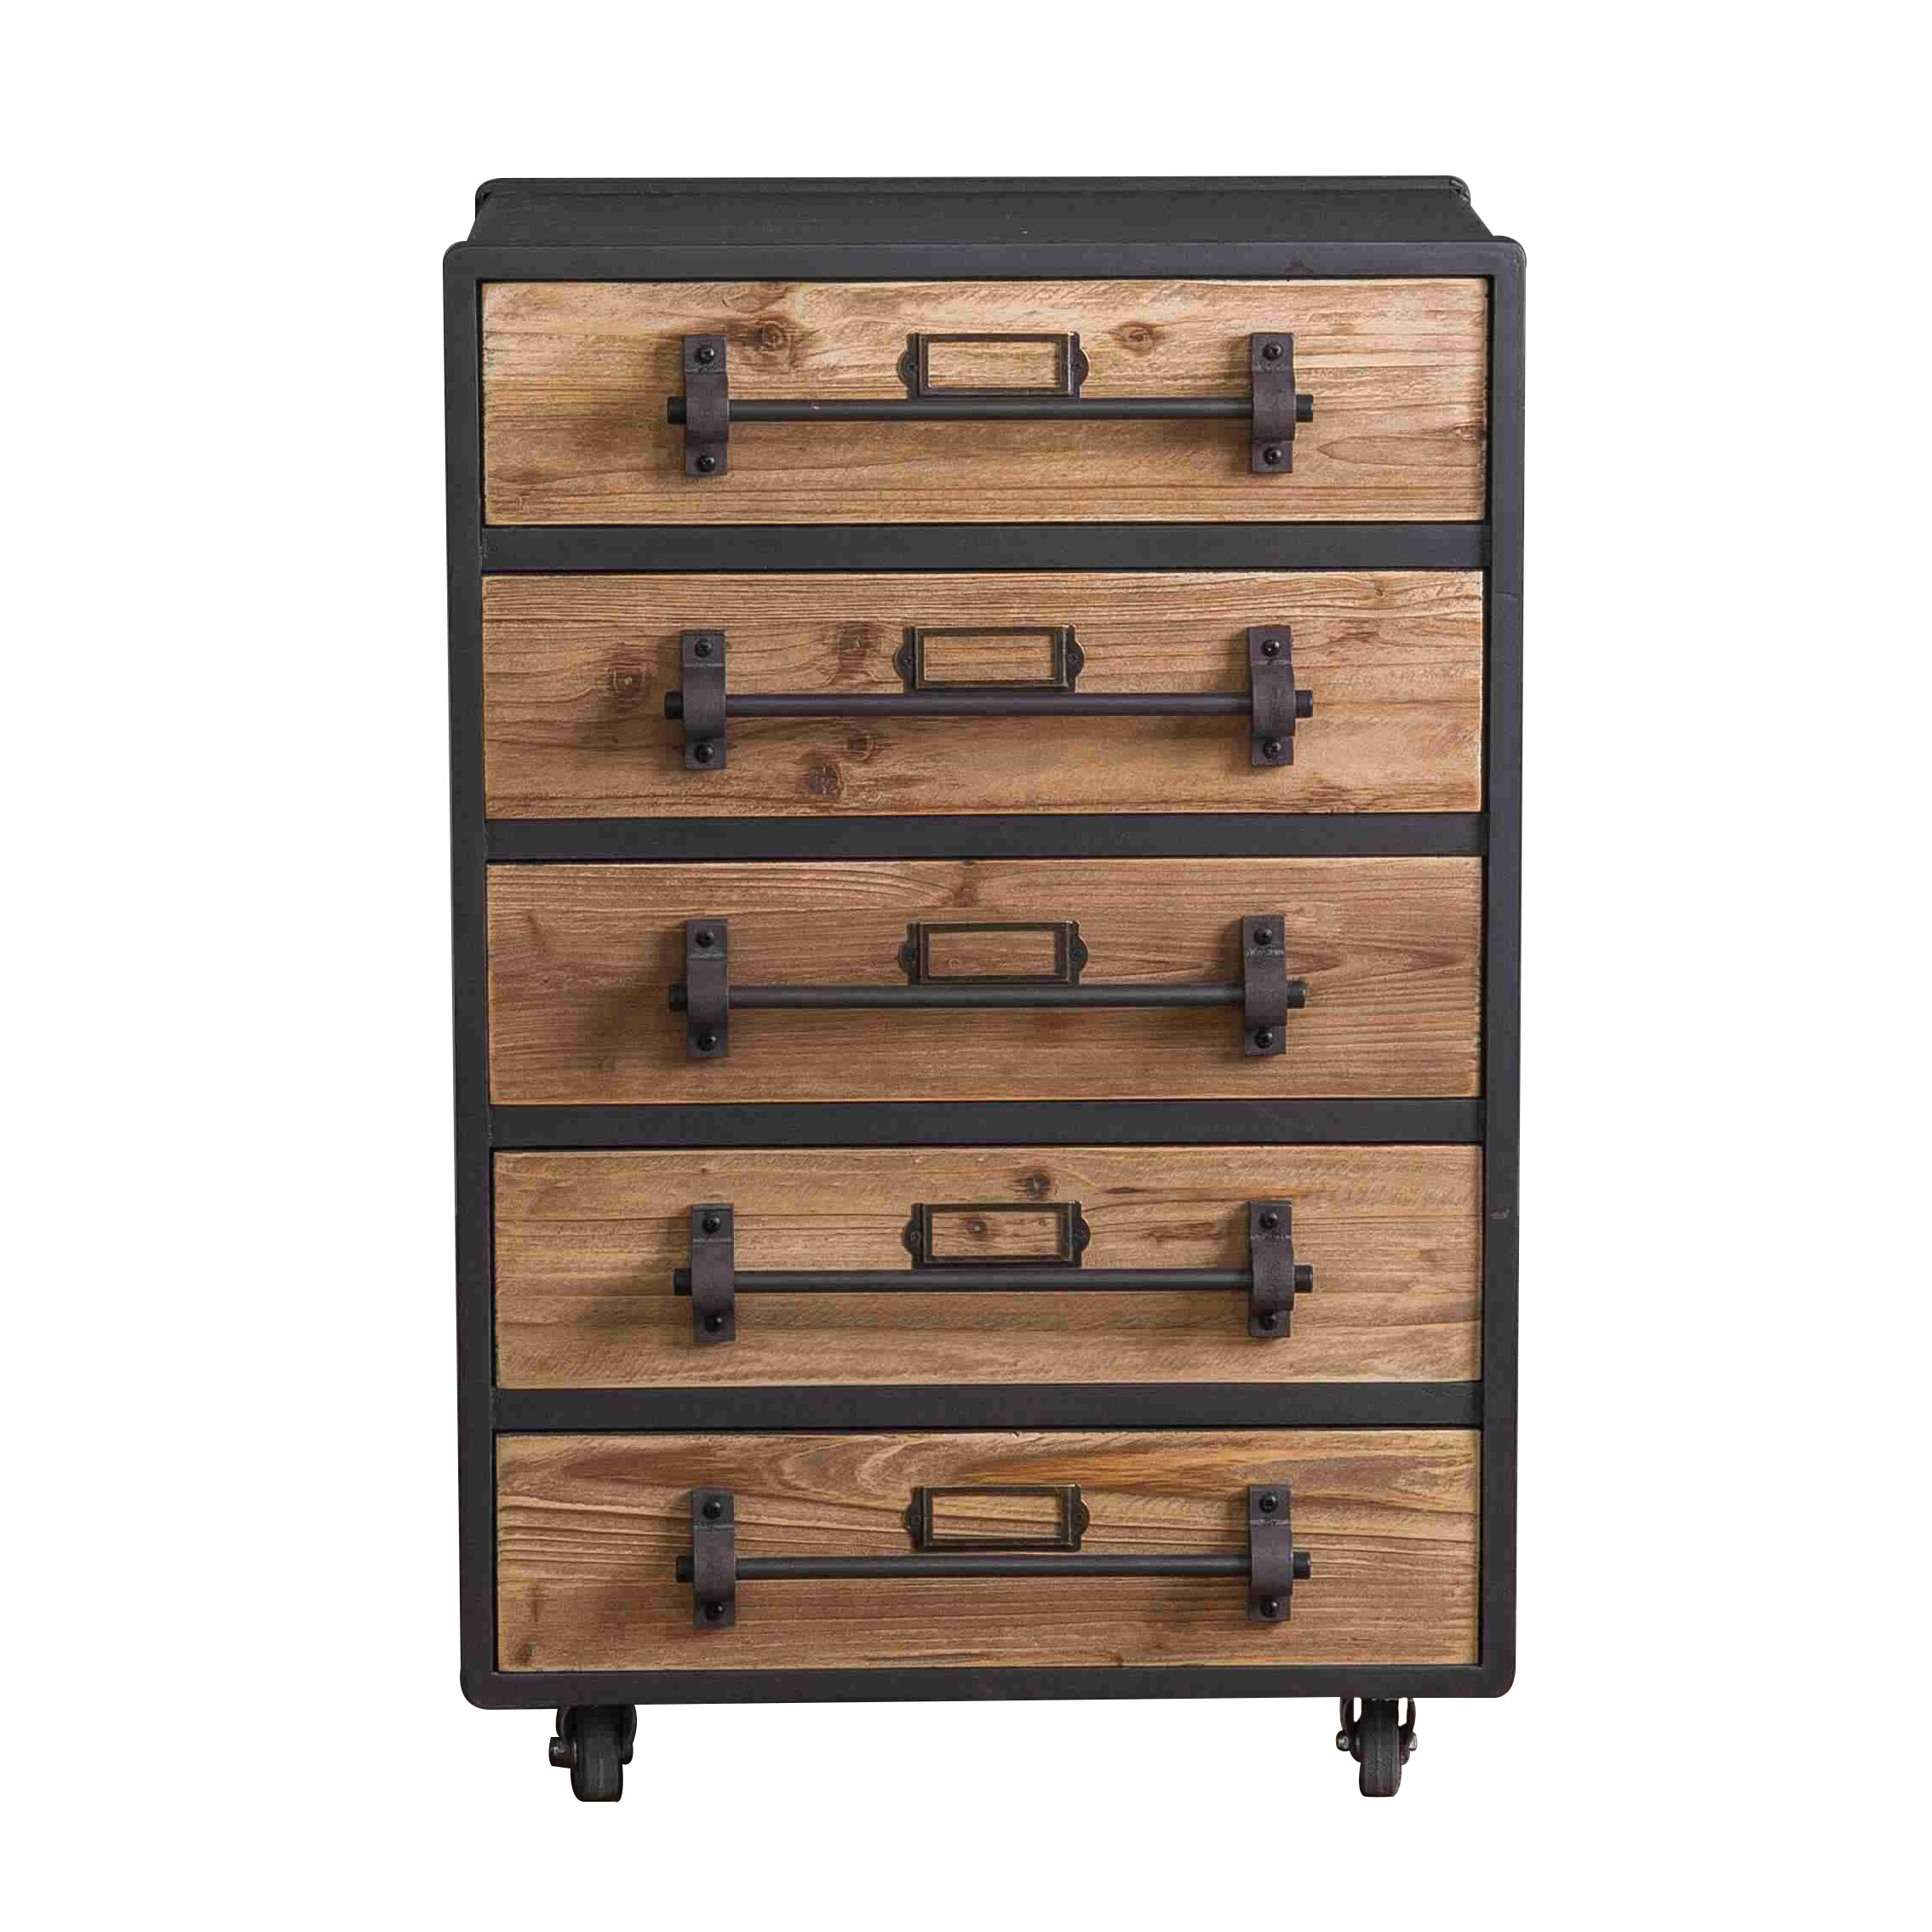 Marvelous photograph of Teton Home 5 Drawer Wooden Chest Wayfair with #946037 color and 2269x2269 pixels